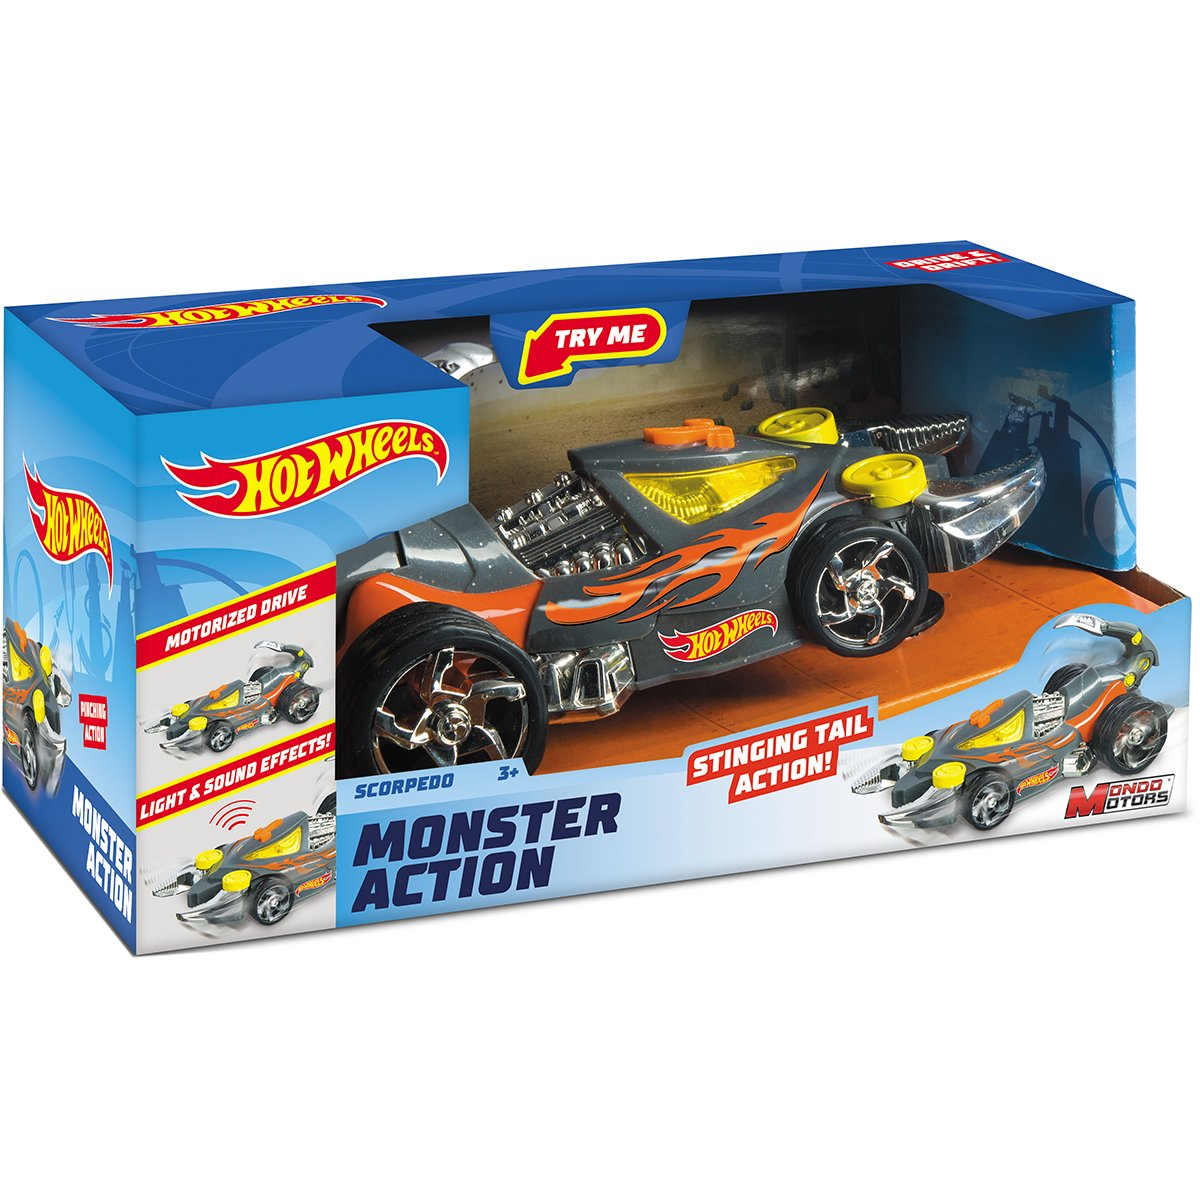 Masinuta cu lumini si sunete Hot Wheels, Monster Action, Scorpedo